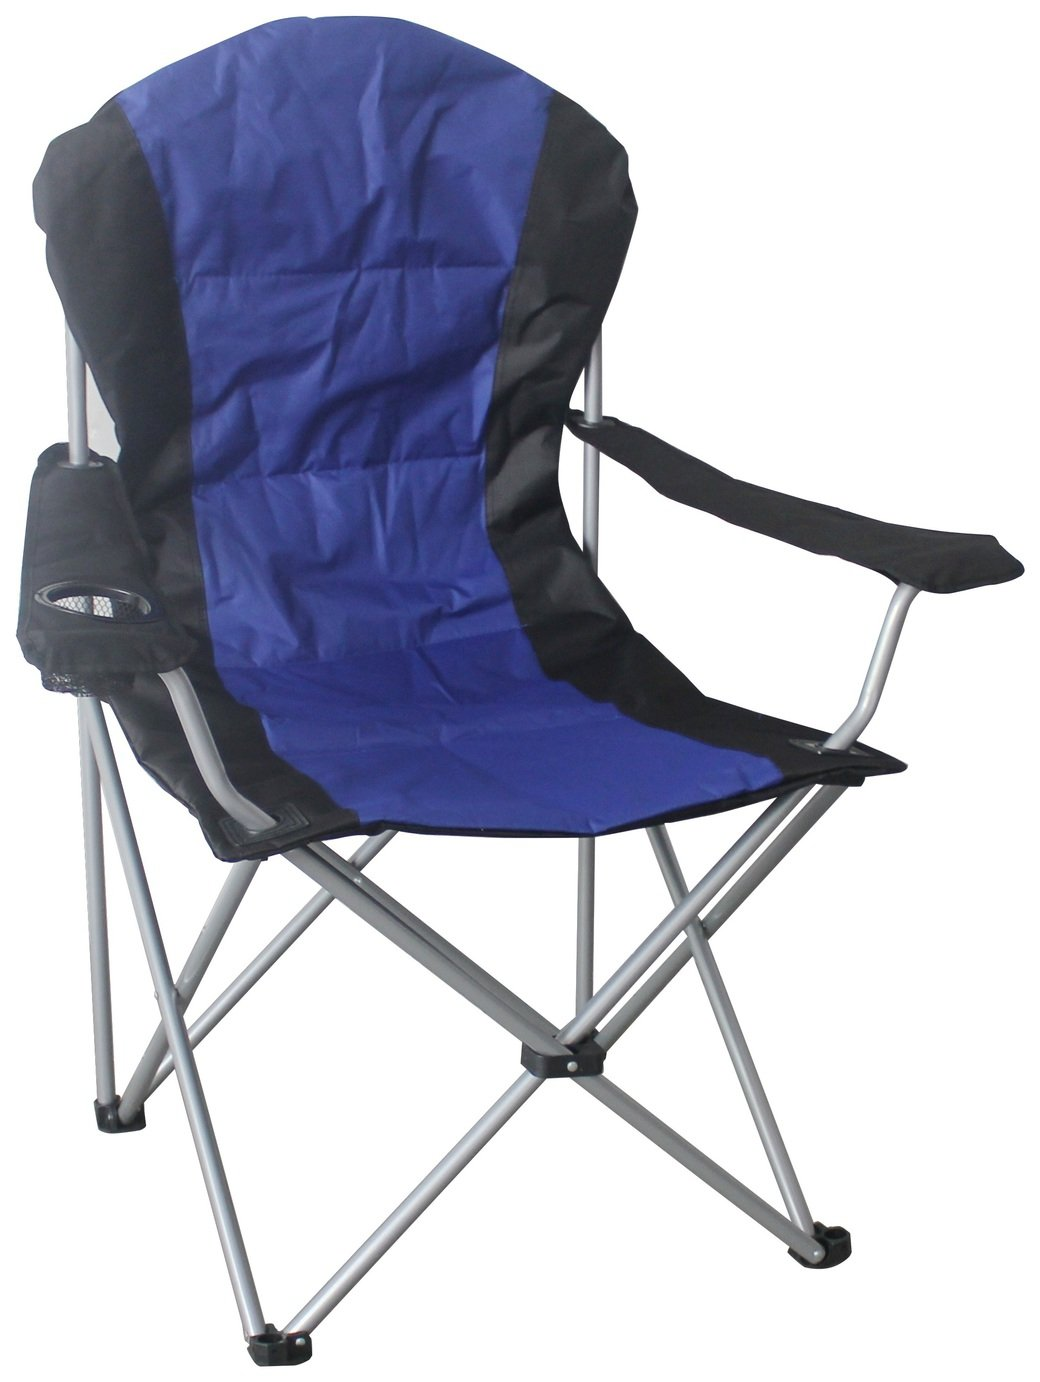 Portable Padded High Back Chair  sc 1 st  Argos & Garden chairs and sun loungers | Argos